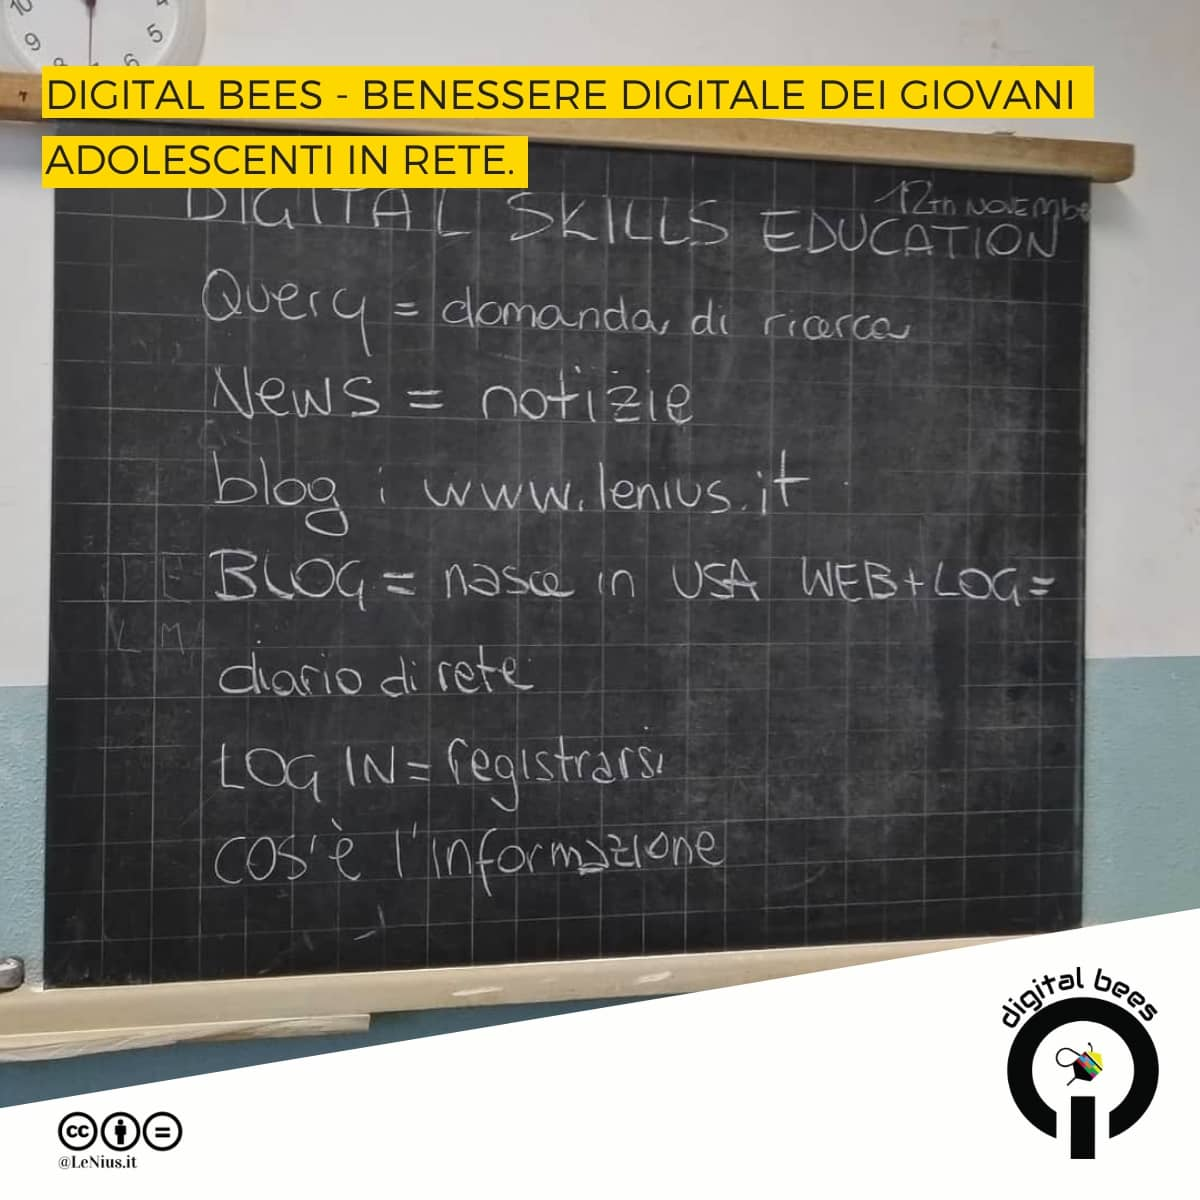 digital skills education con il progetto digital bees